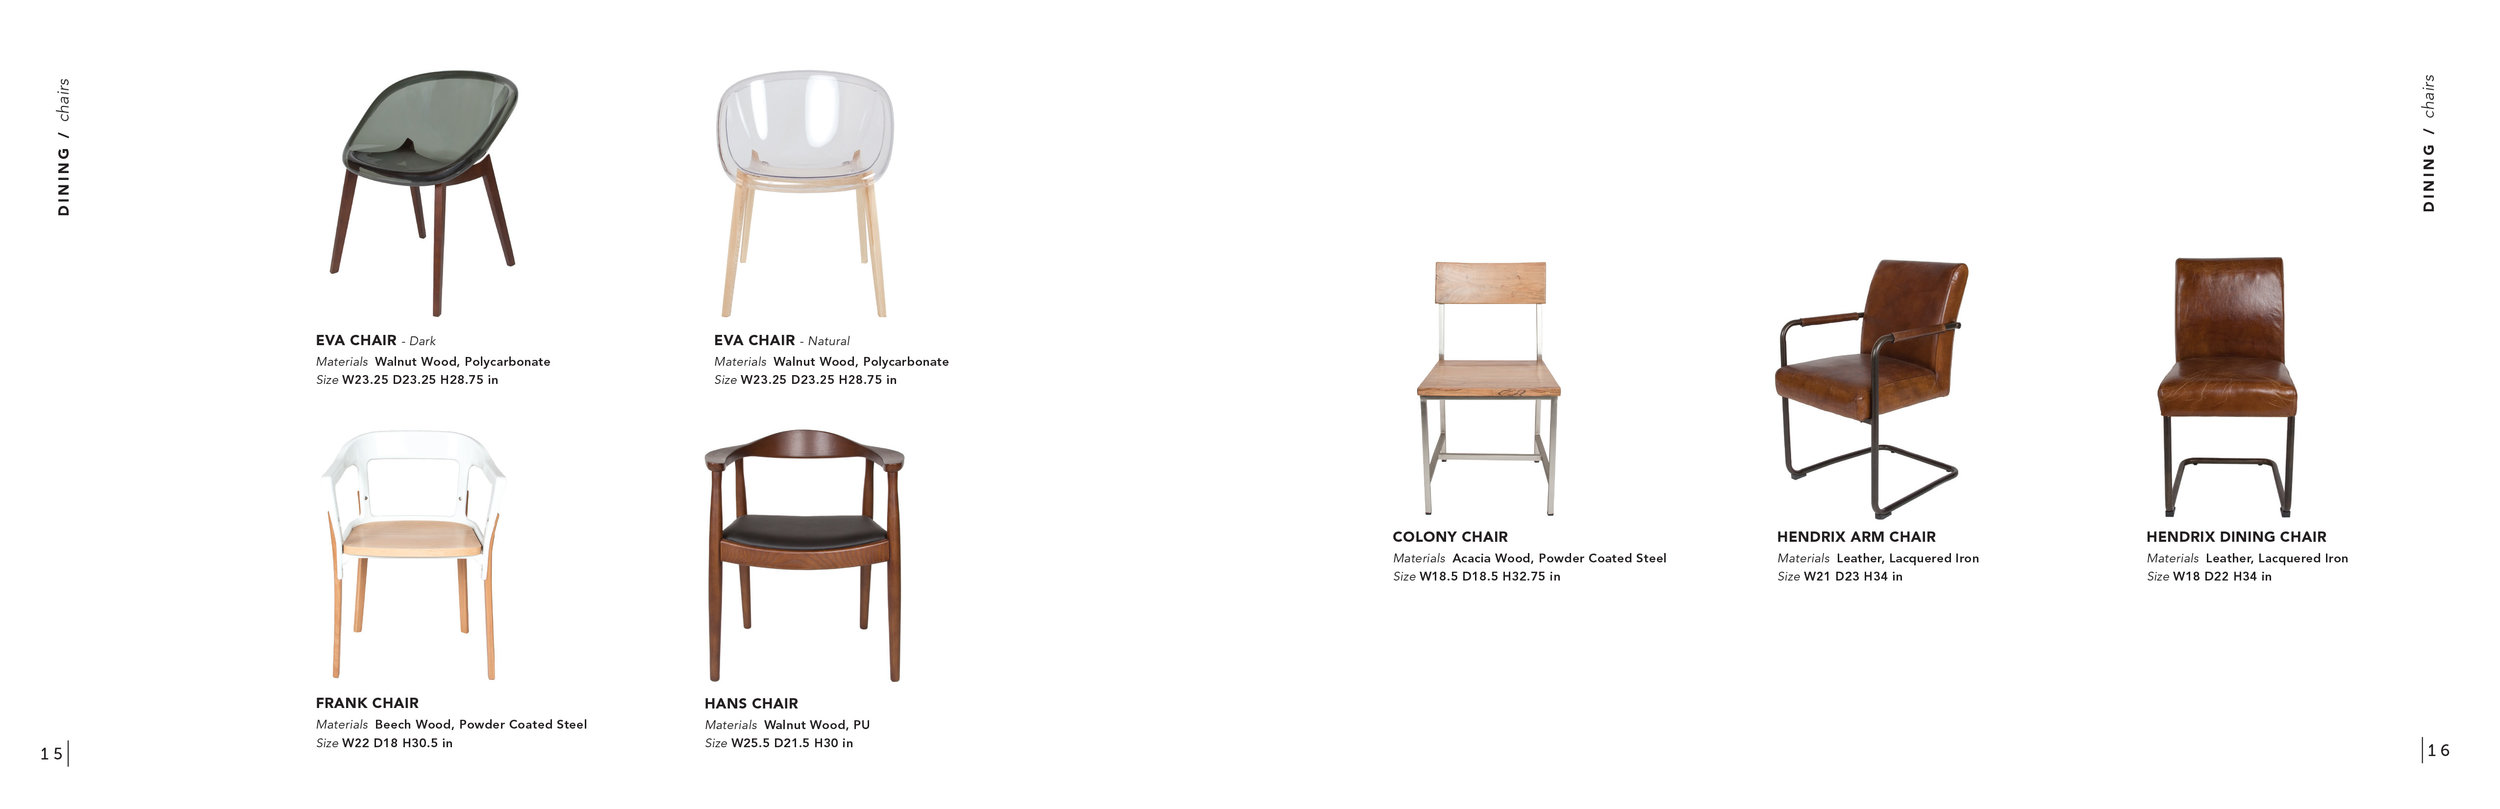 The Goods Catalogue_Chairs02.jpg